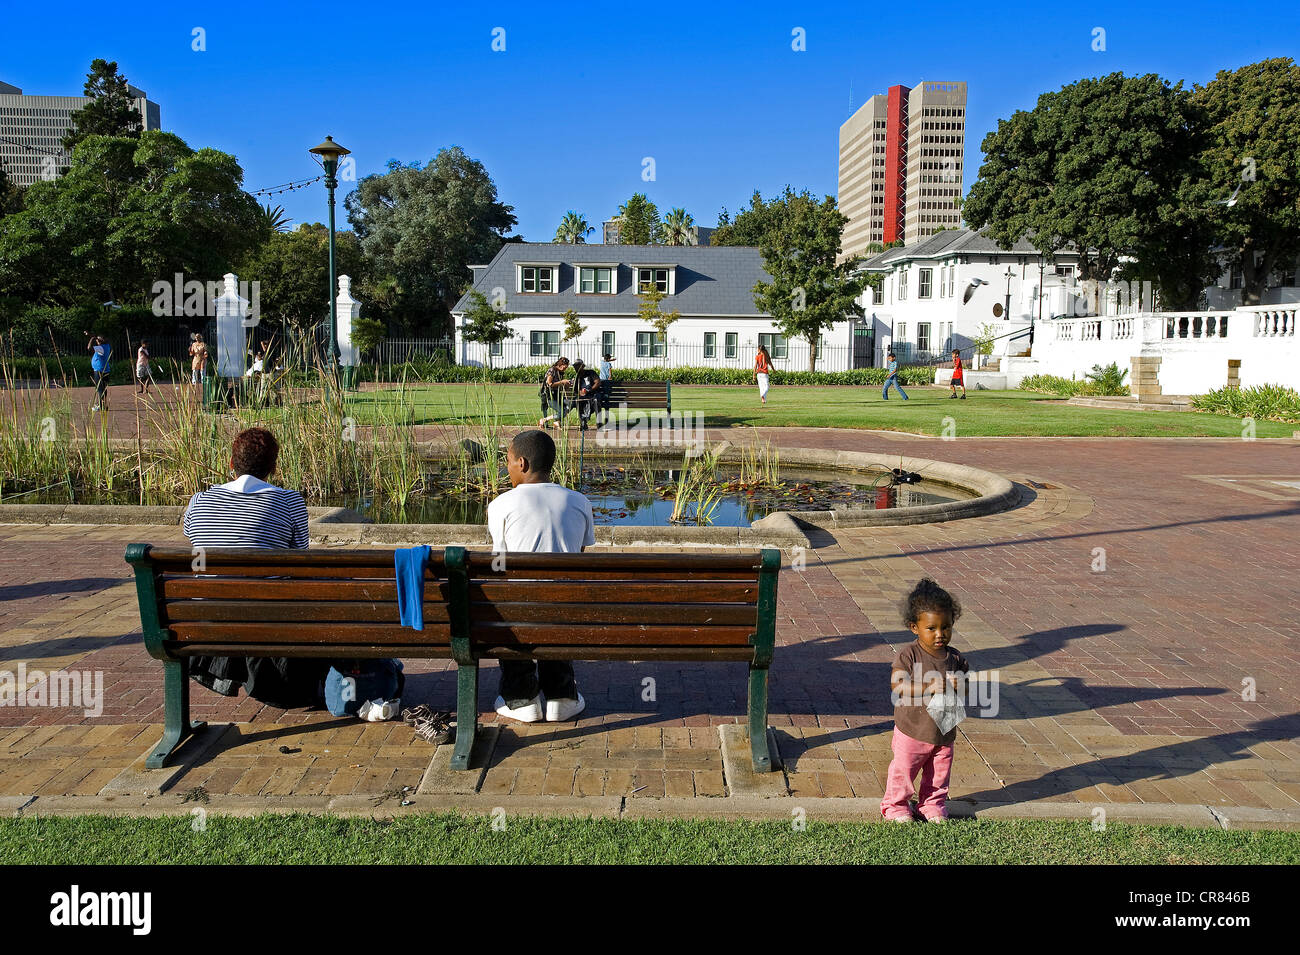 South Africa, Western Cape, Cape Town, Company's Garden - Stock Image